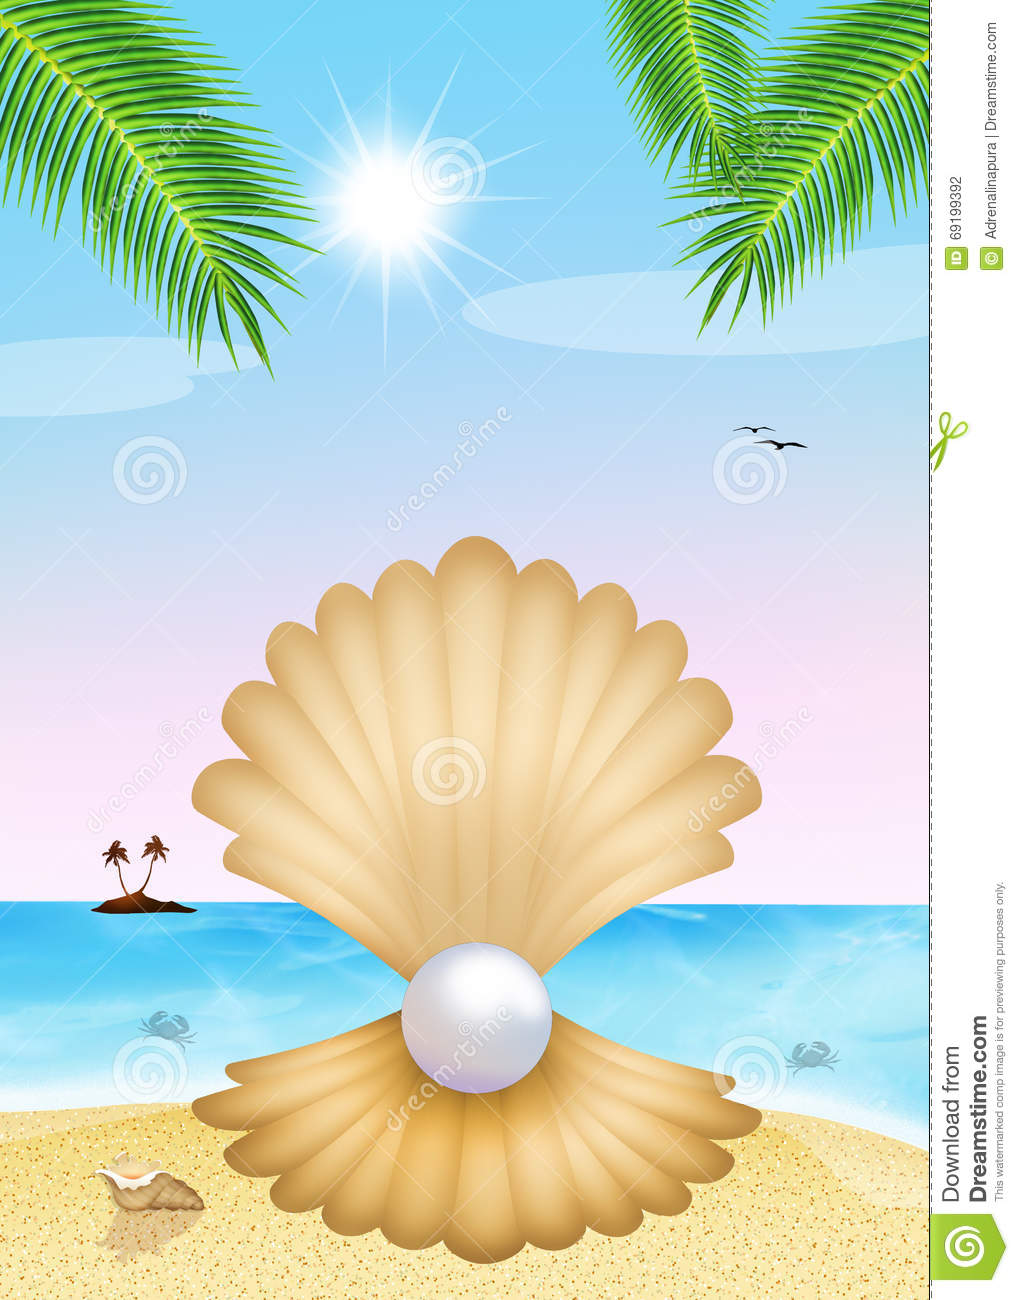 Pearl In The Shell On The Beach Stock Illustration - Image ...